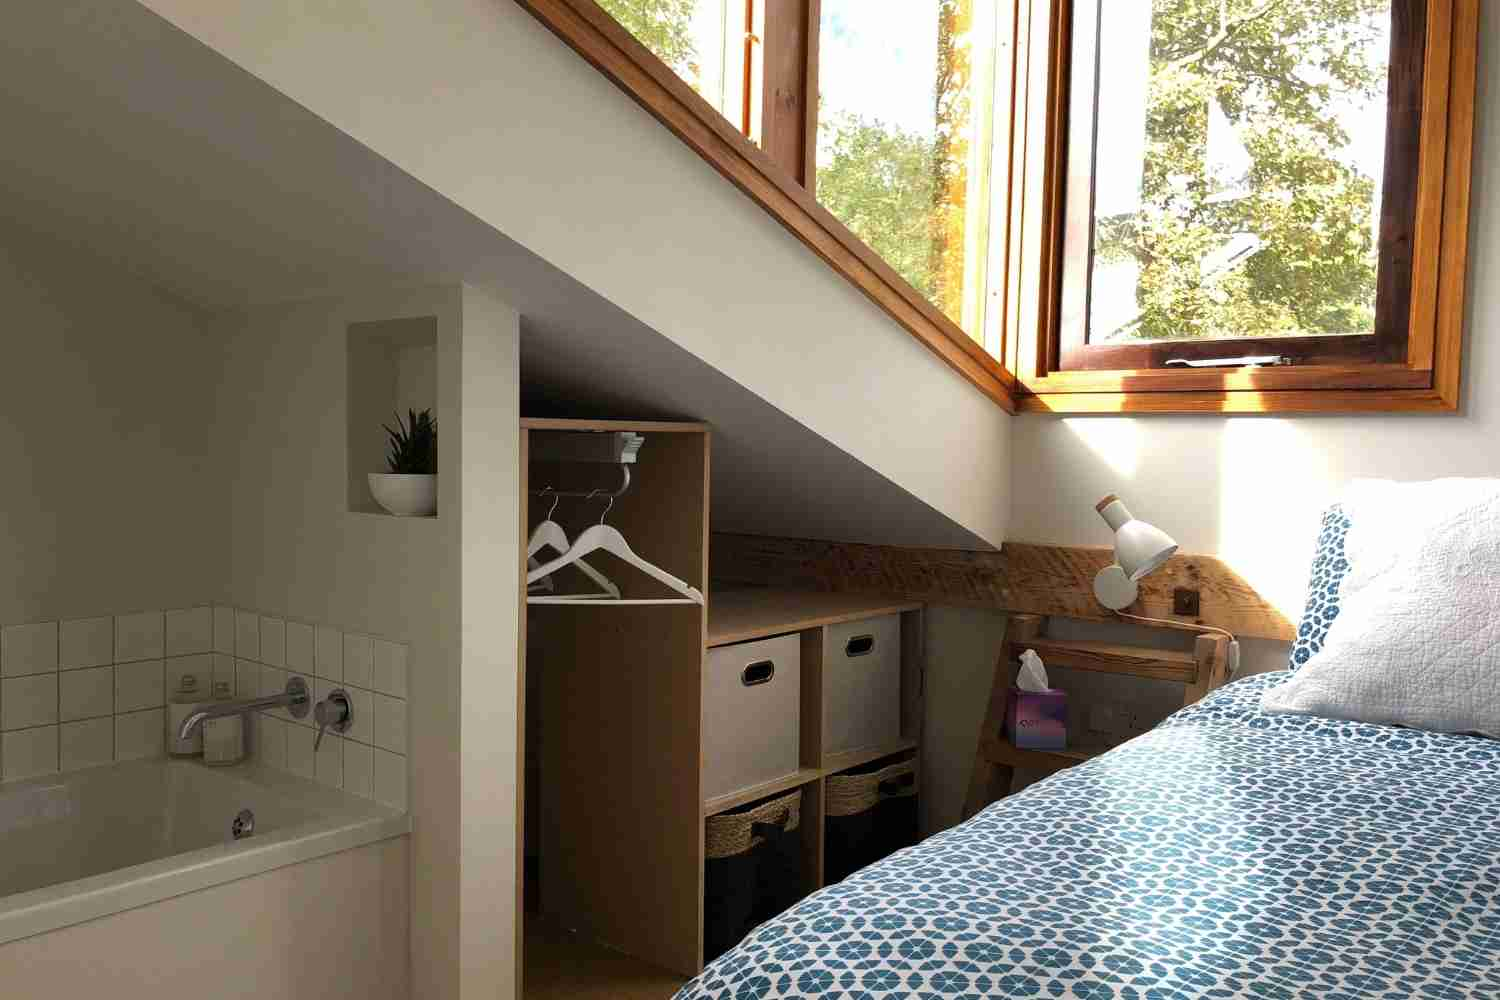 Bedroom One - with cleverly built in storage & bath